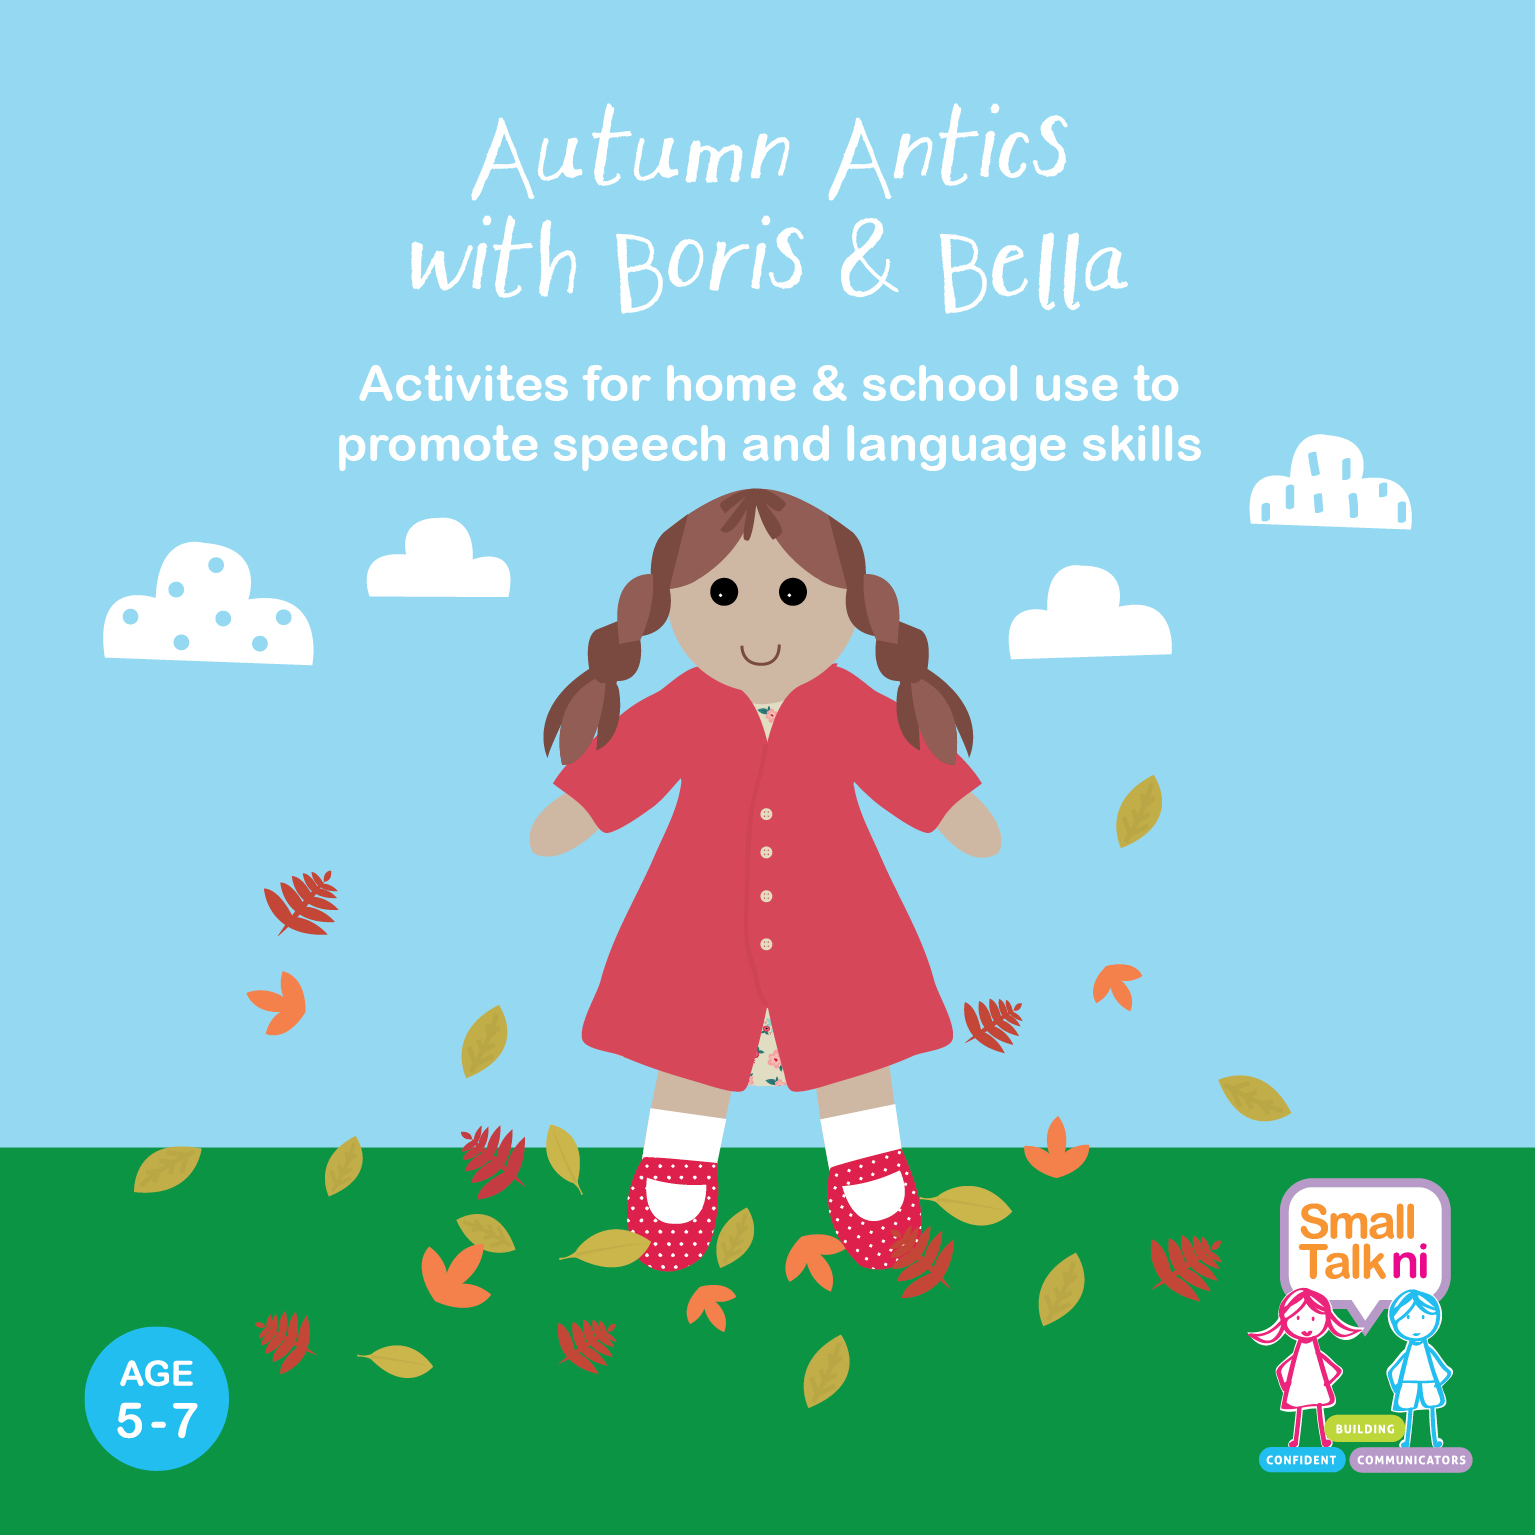 Autumn Antics with Boris and Bella - for 5-7 year olds